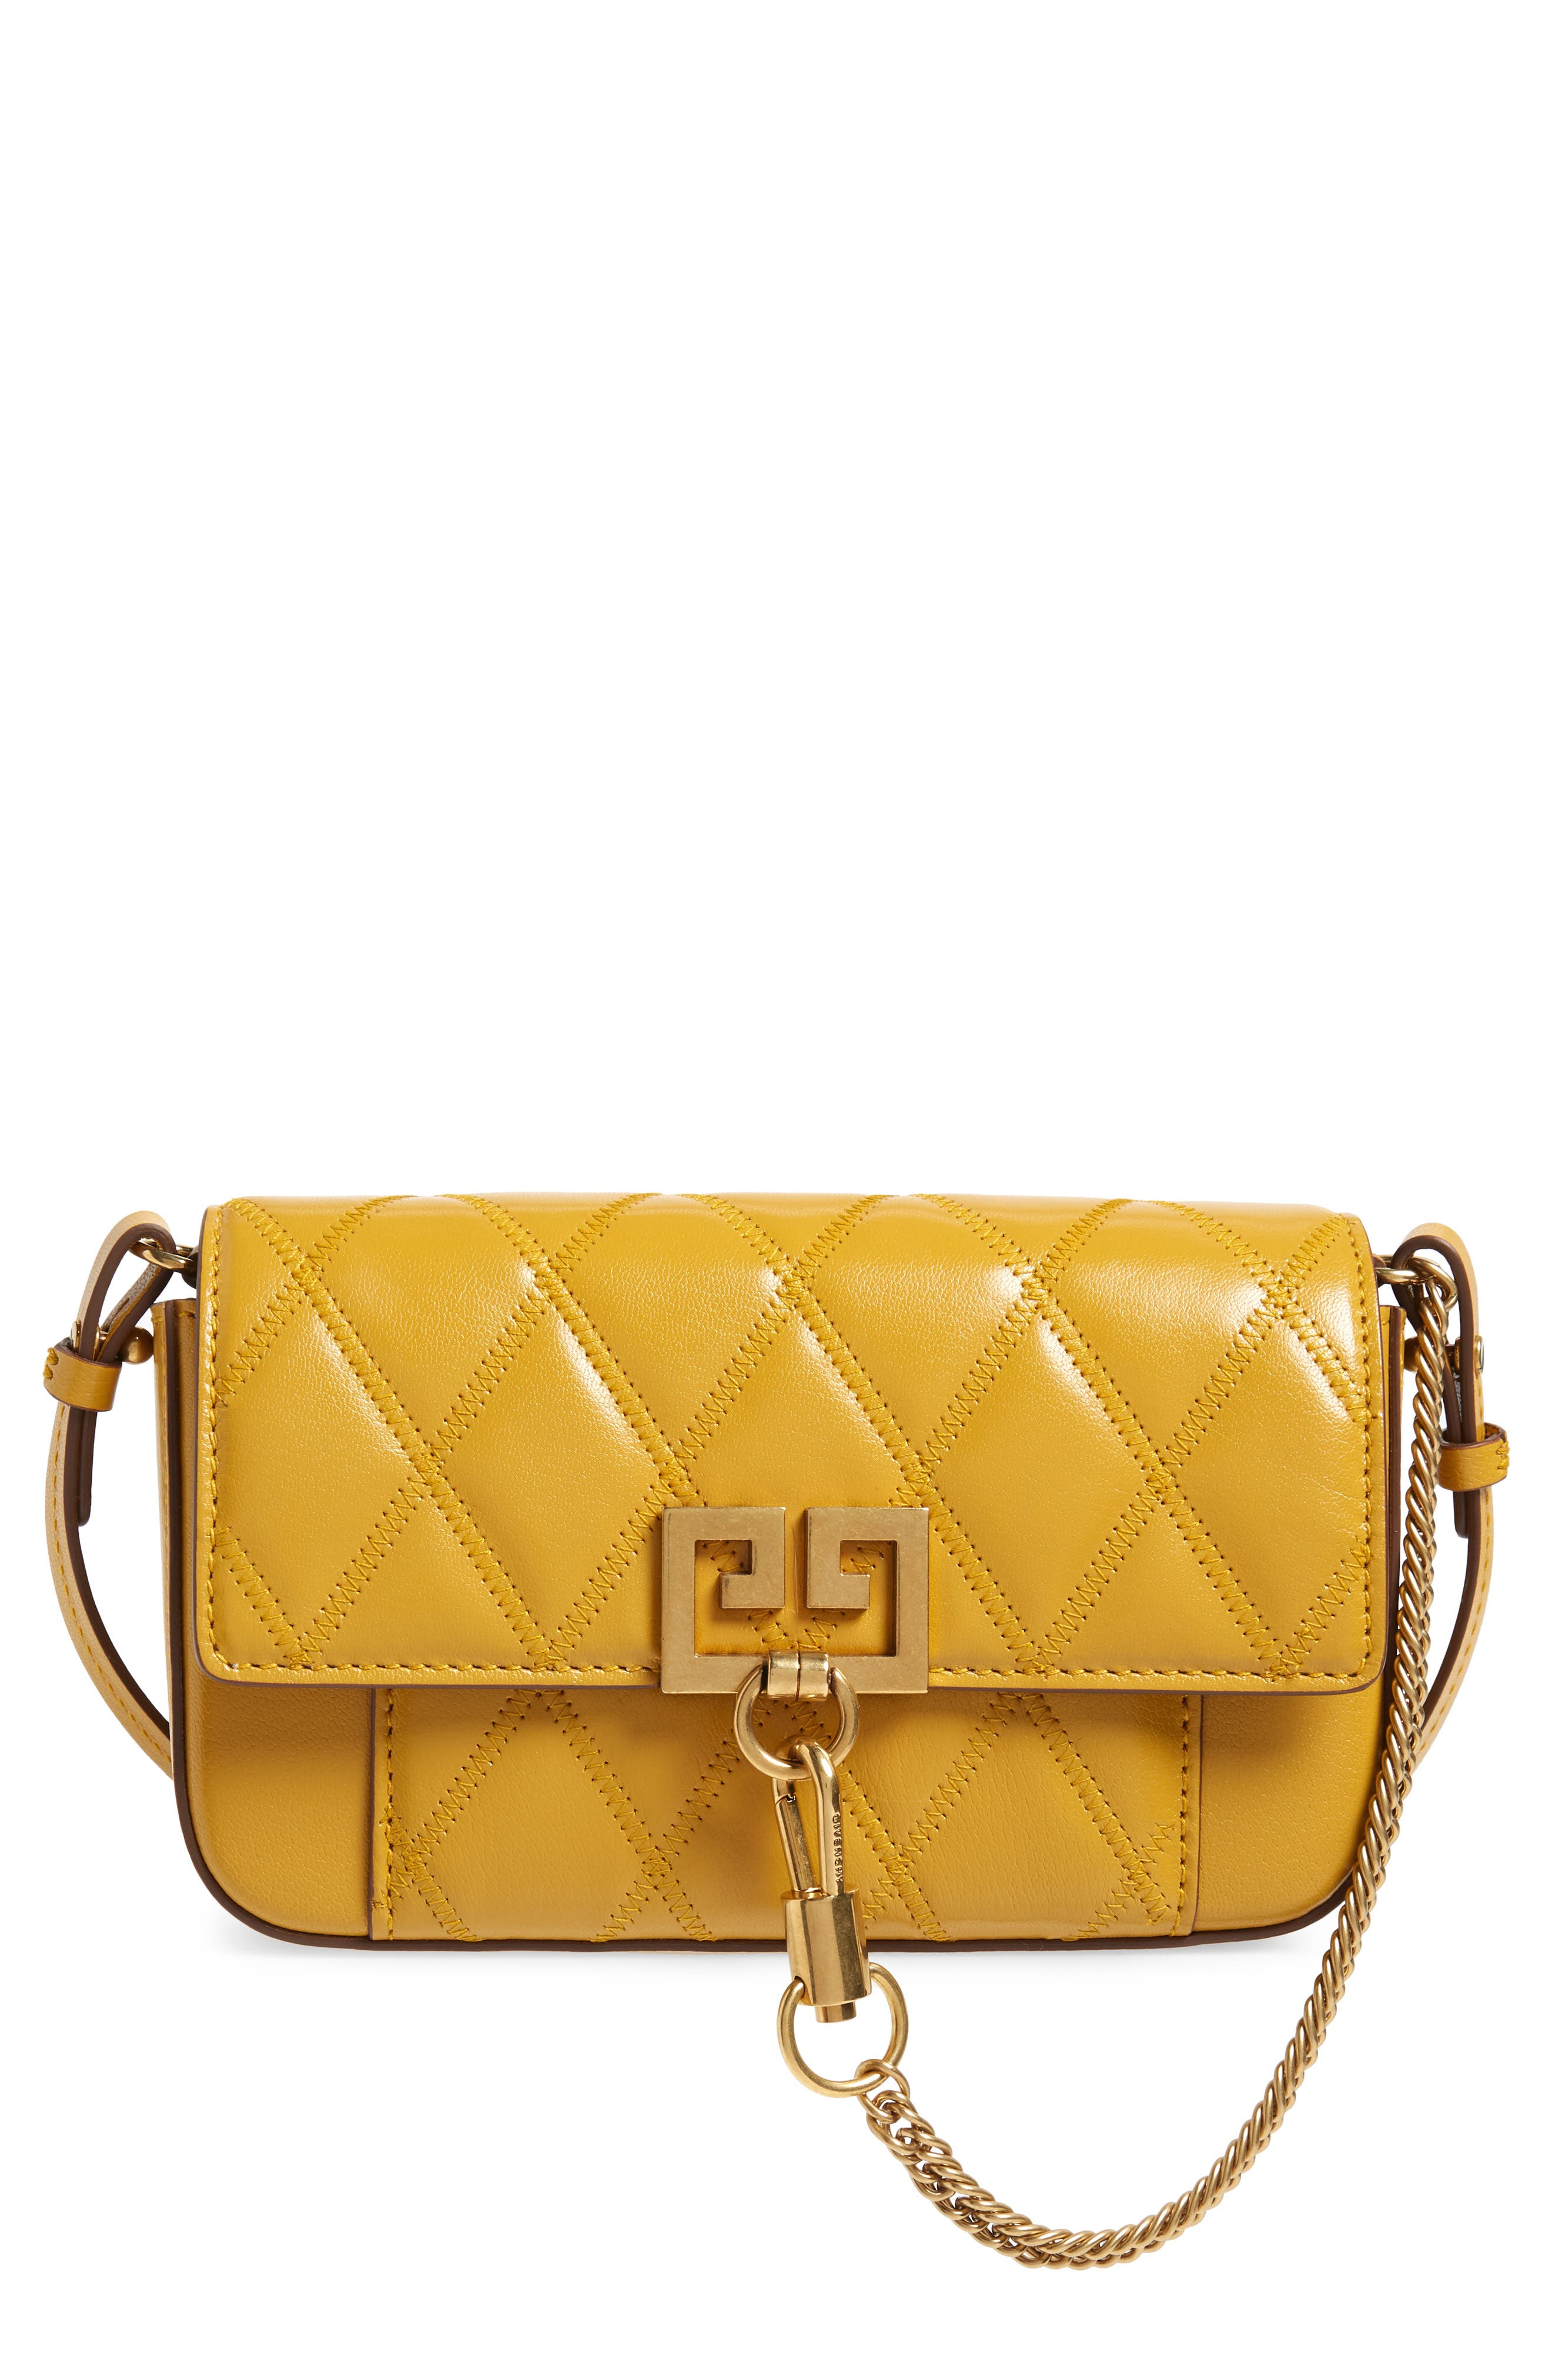 Mini Pocket Quilted Convertible Leather Bag,                             Main thumbnail 1, color,                             GOLDEN